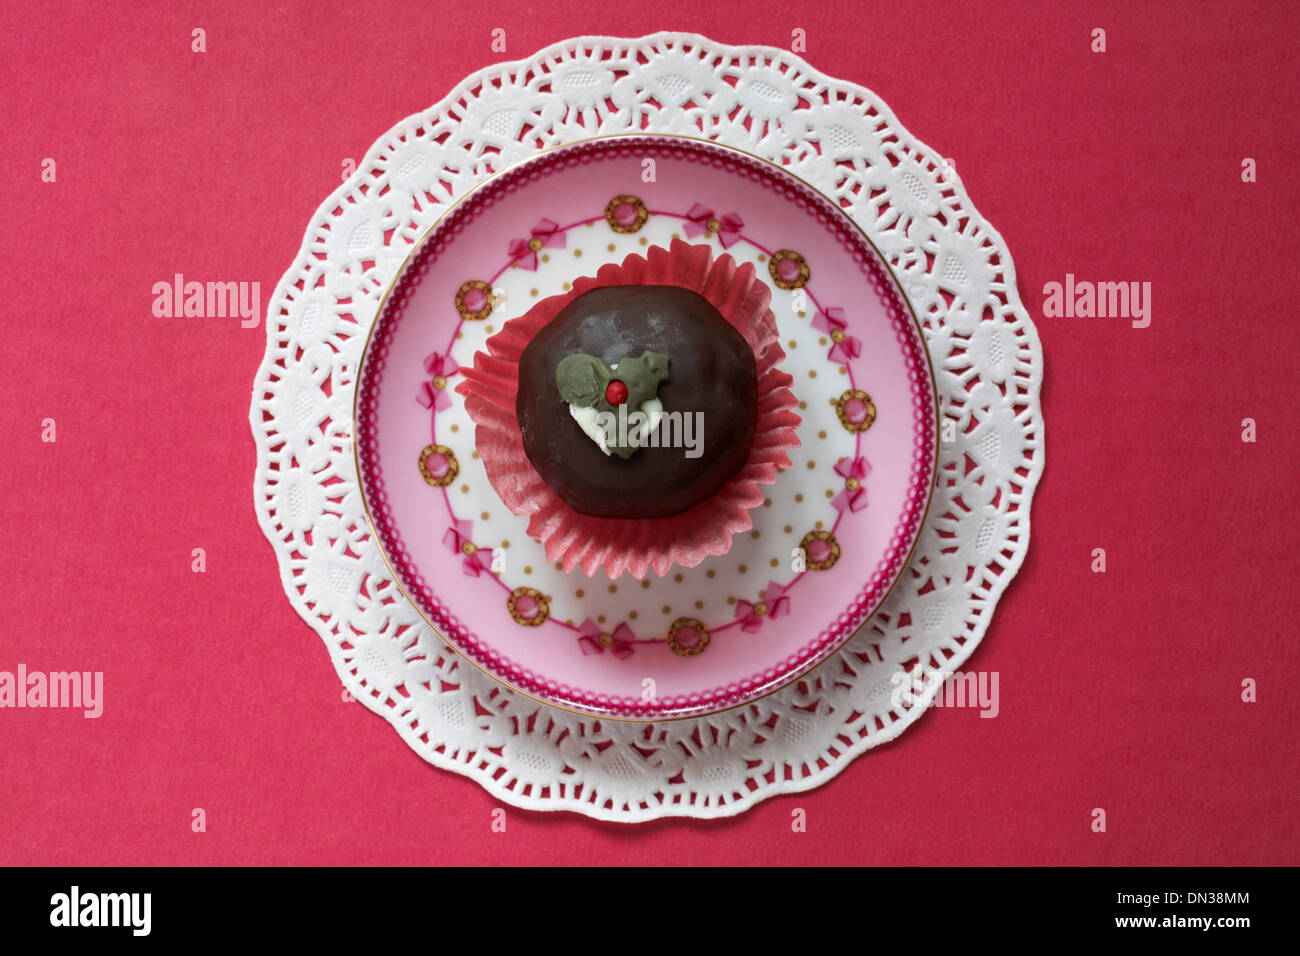 Christmas pudding chocolate truffle cake on pink decorative plate and doilie Stock Photo